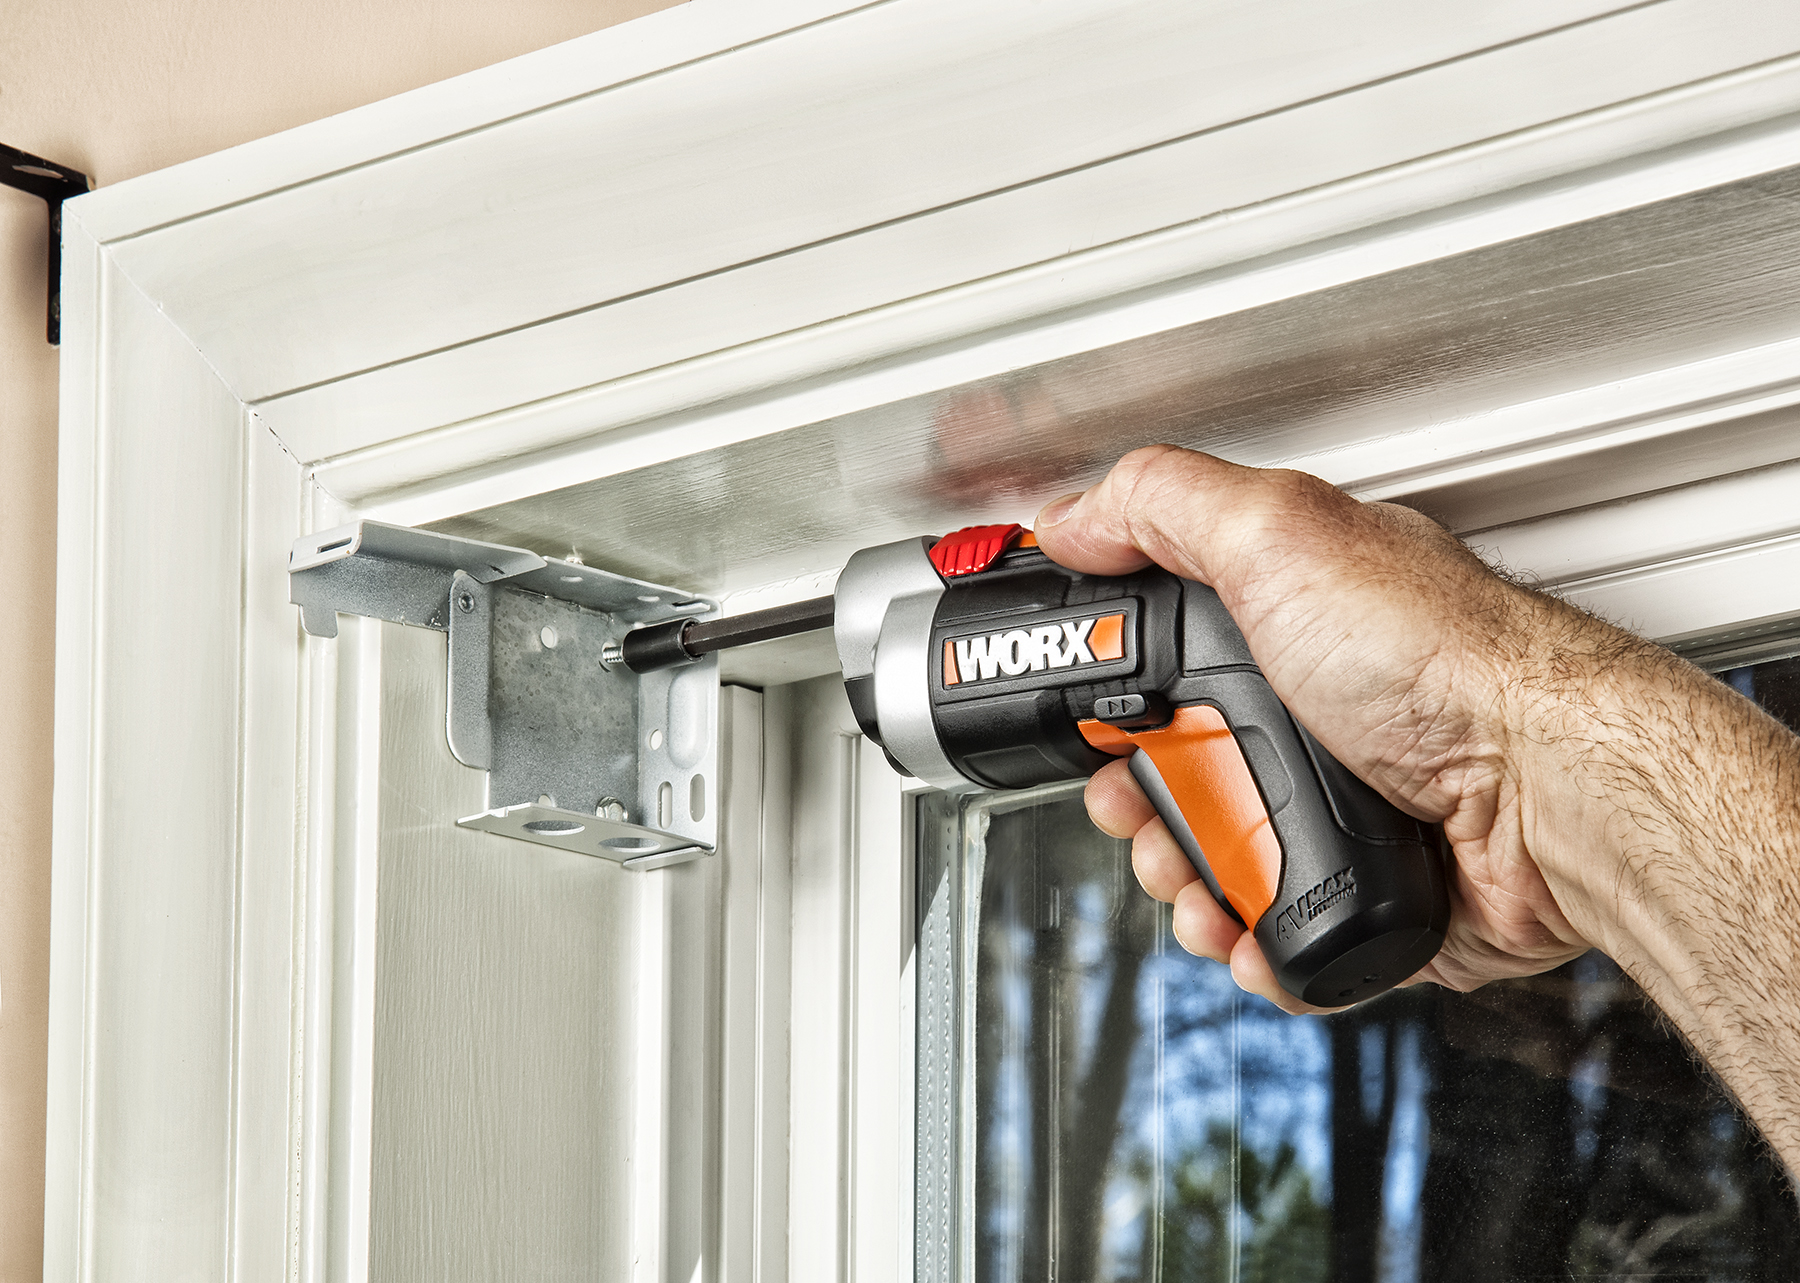 New Worx Xtd Extended Reach Driver Makes A Great Holiday